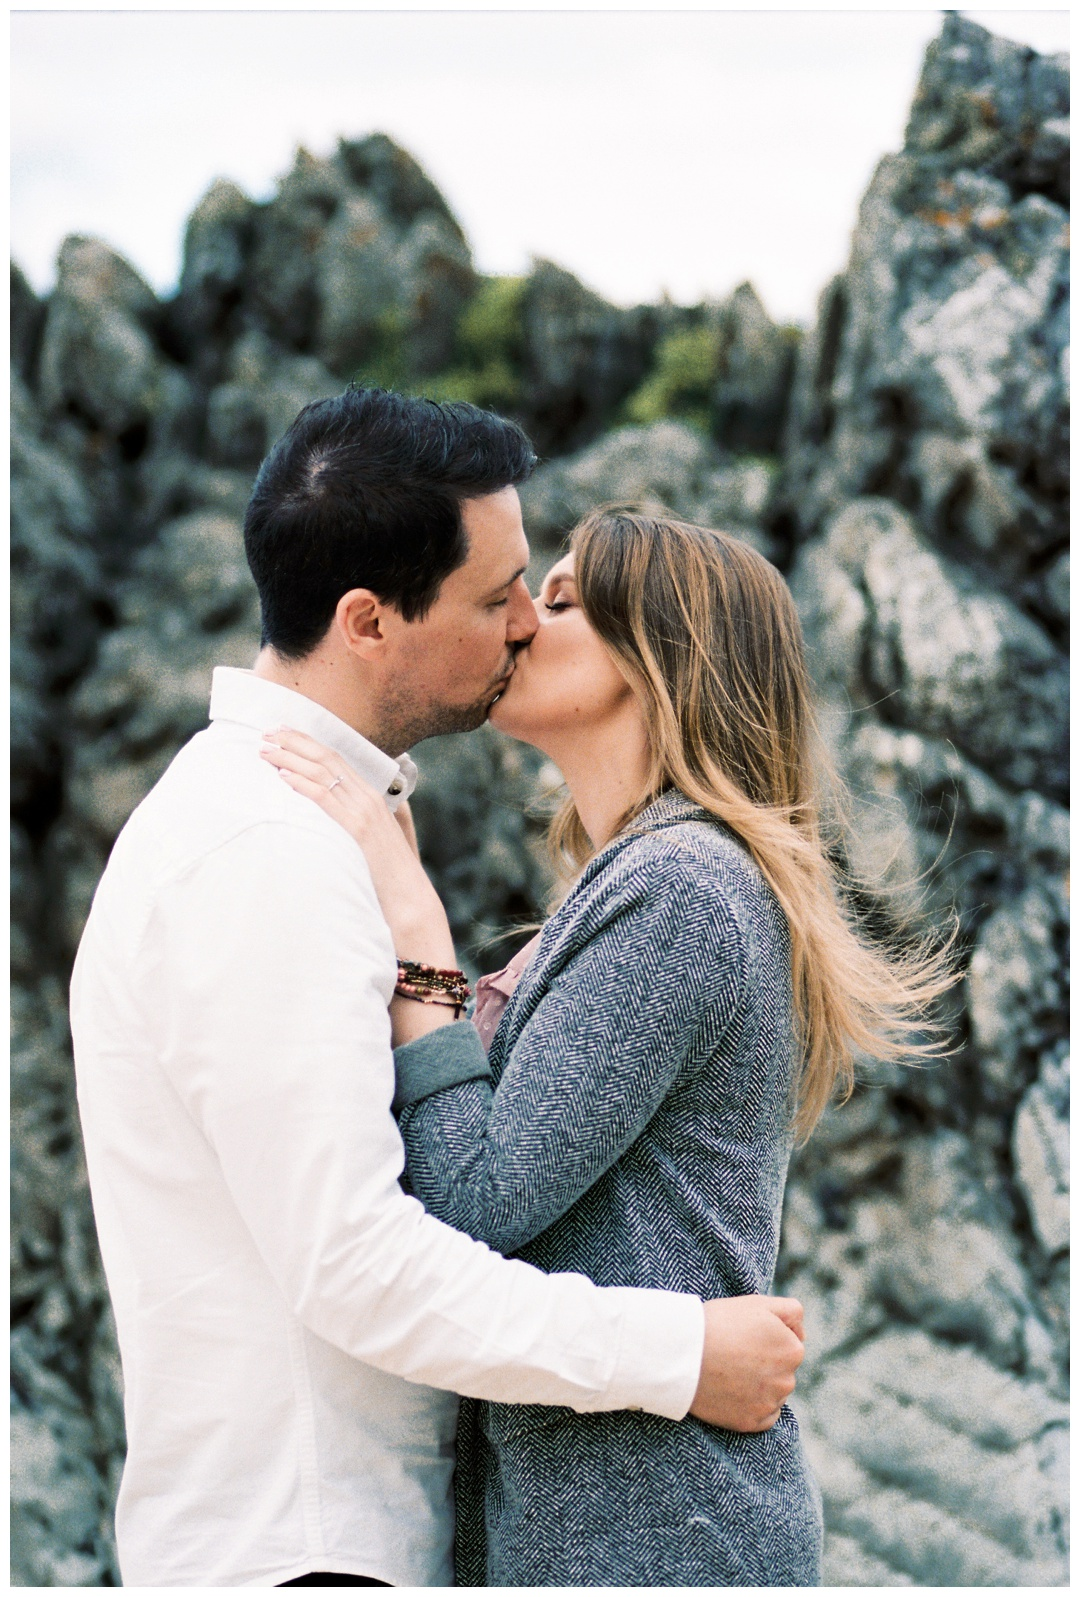 We_Can _Be_Heroes_alternative_wedding_photographer_Kinnagoe_bay_Donegal_film_photogrpahy_0022